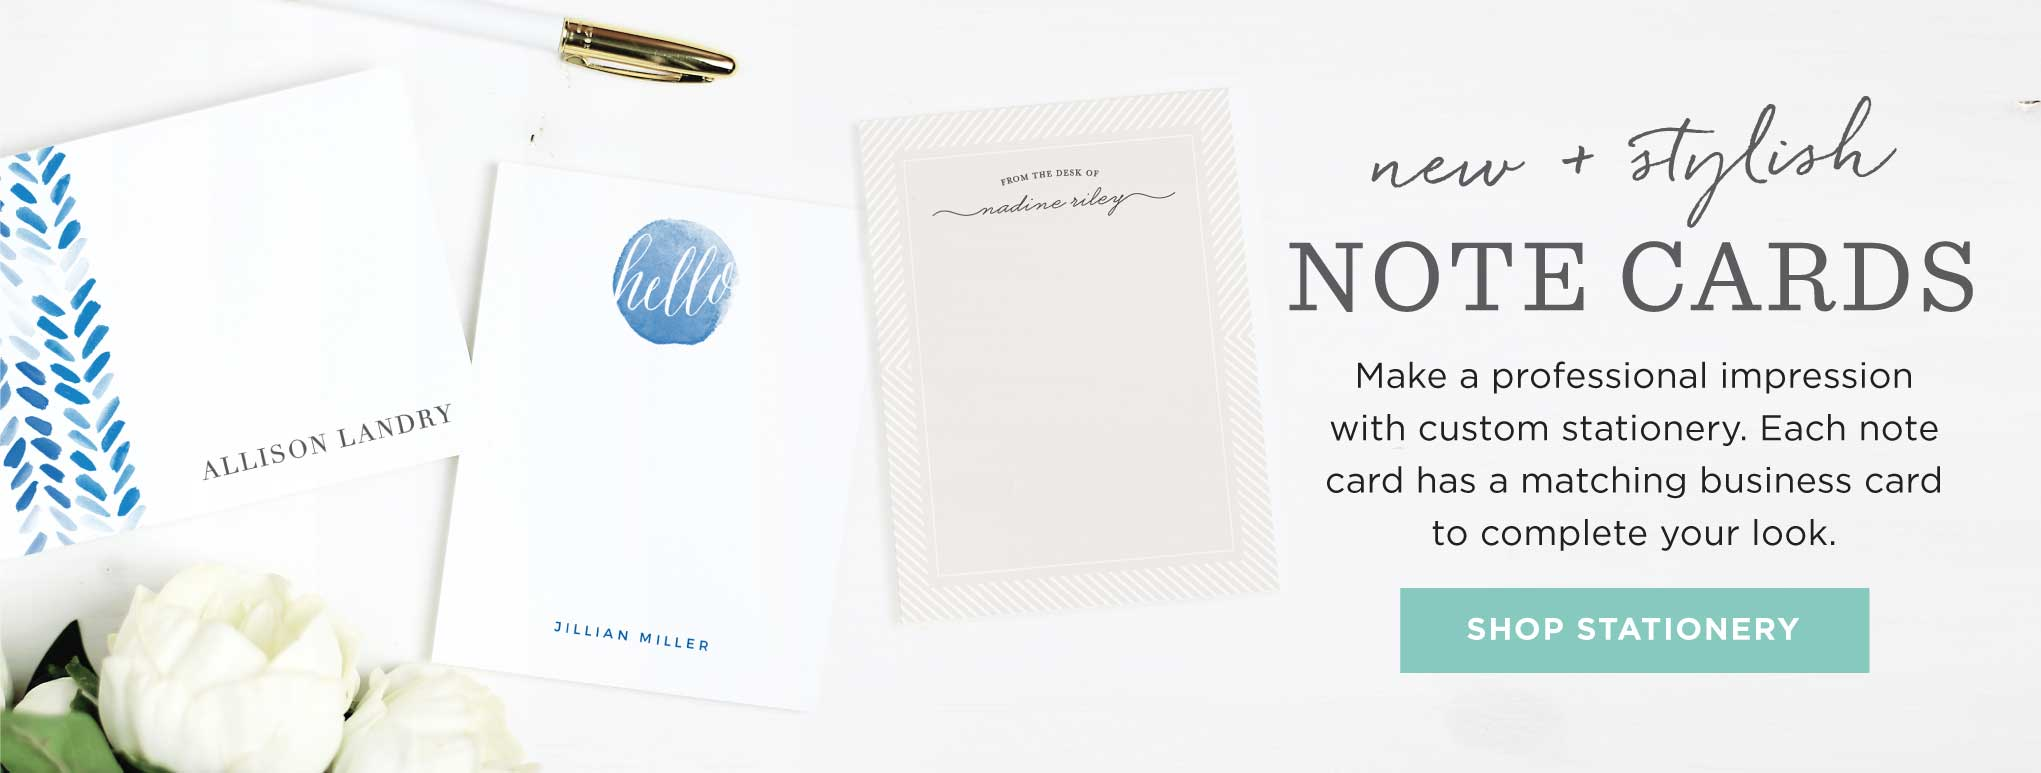 personal stationery - Personalized Stationery Cards